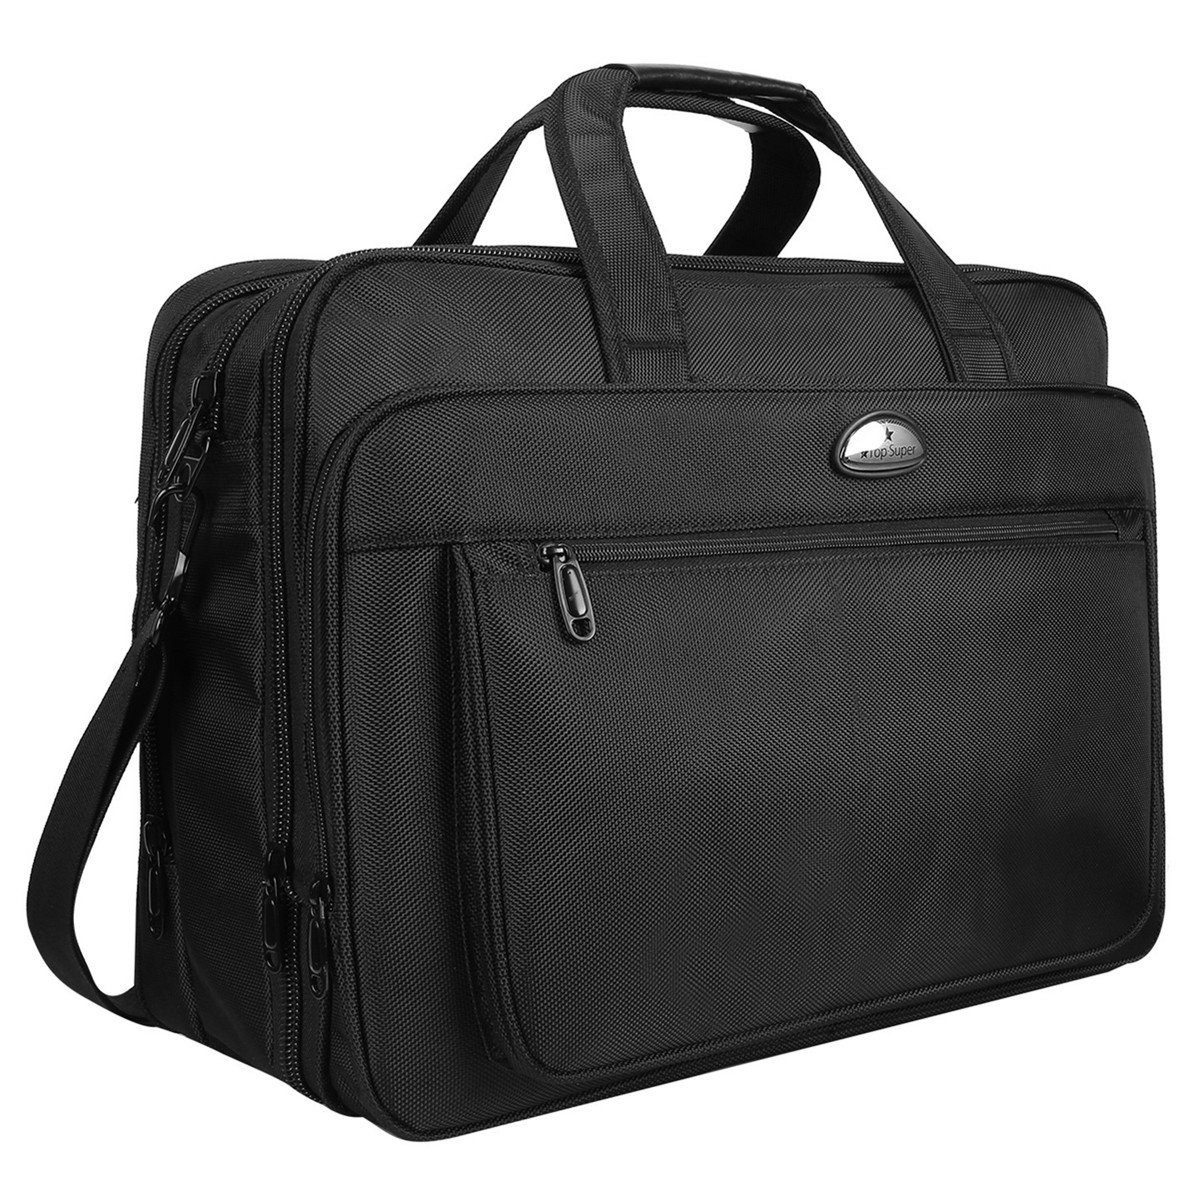 "Laptop bag, 18 Inch Large Briefcase, Travel Messenger Bag With Organizer, Expandable Business Office Bag, Water-Repellent Shoulder Bags For Men Women Fit Up to 17 17.3"" Inch Notebook"